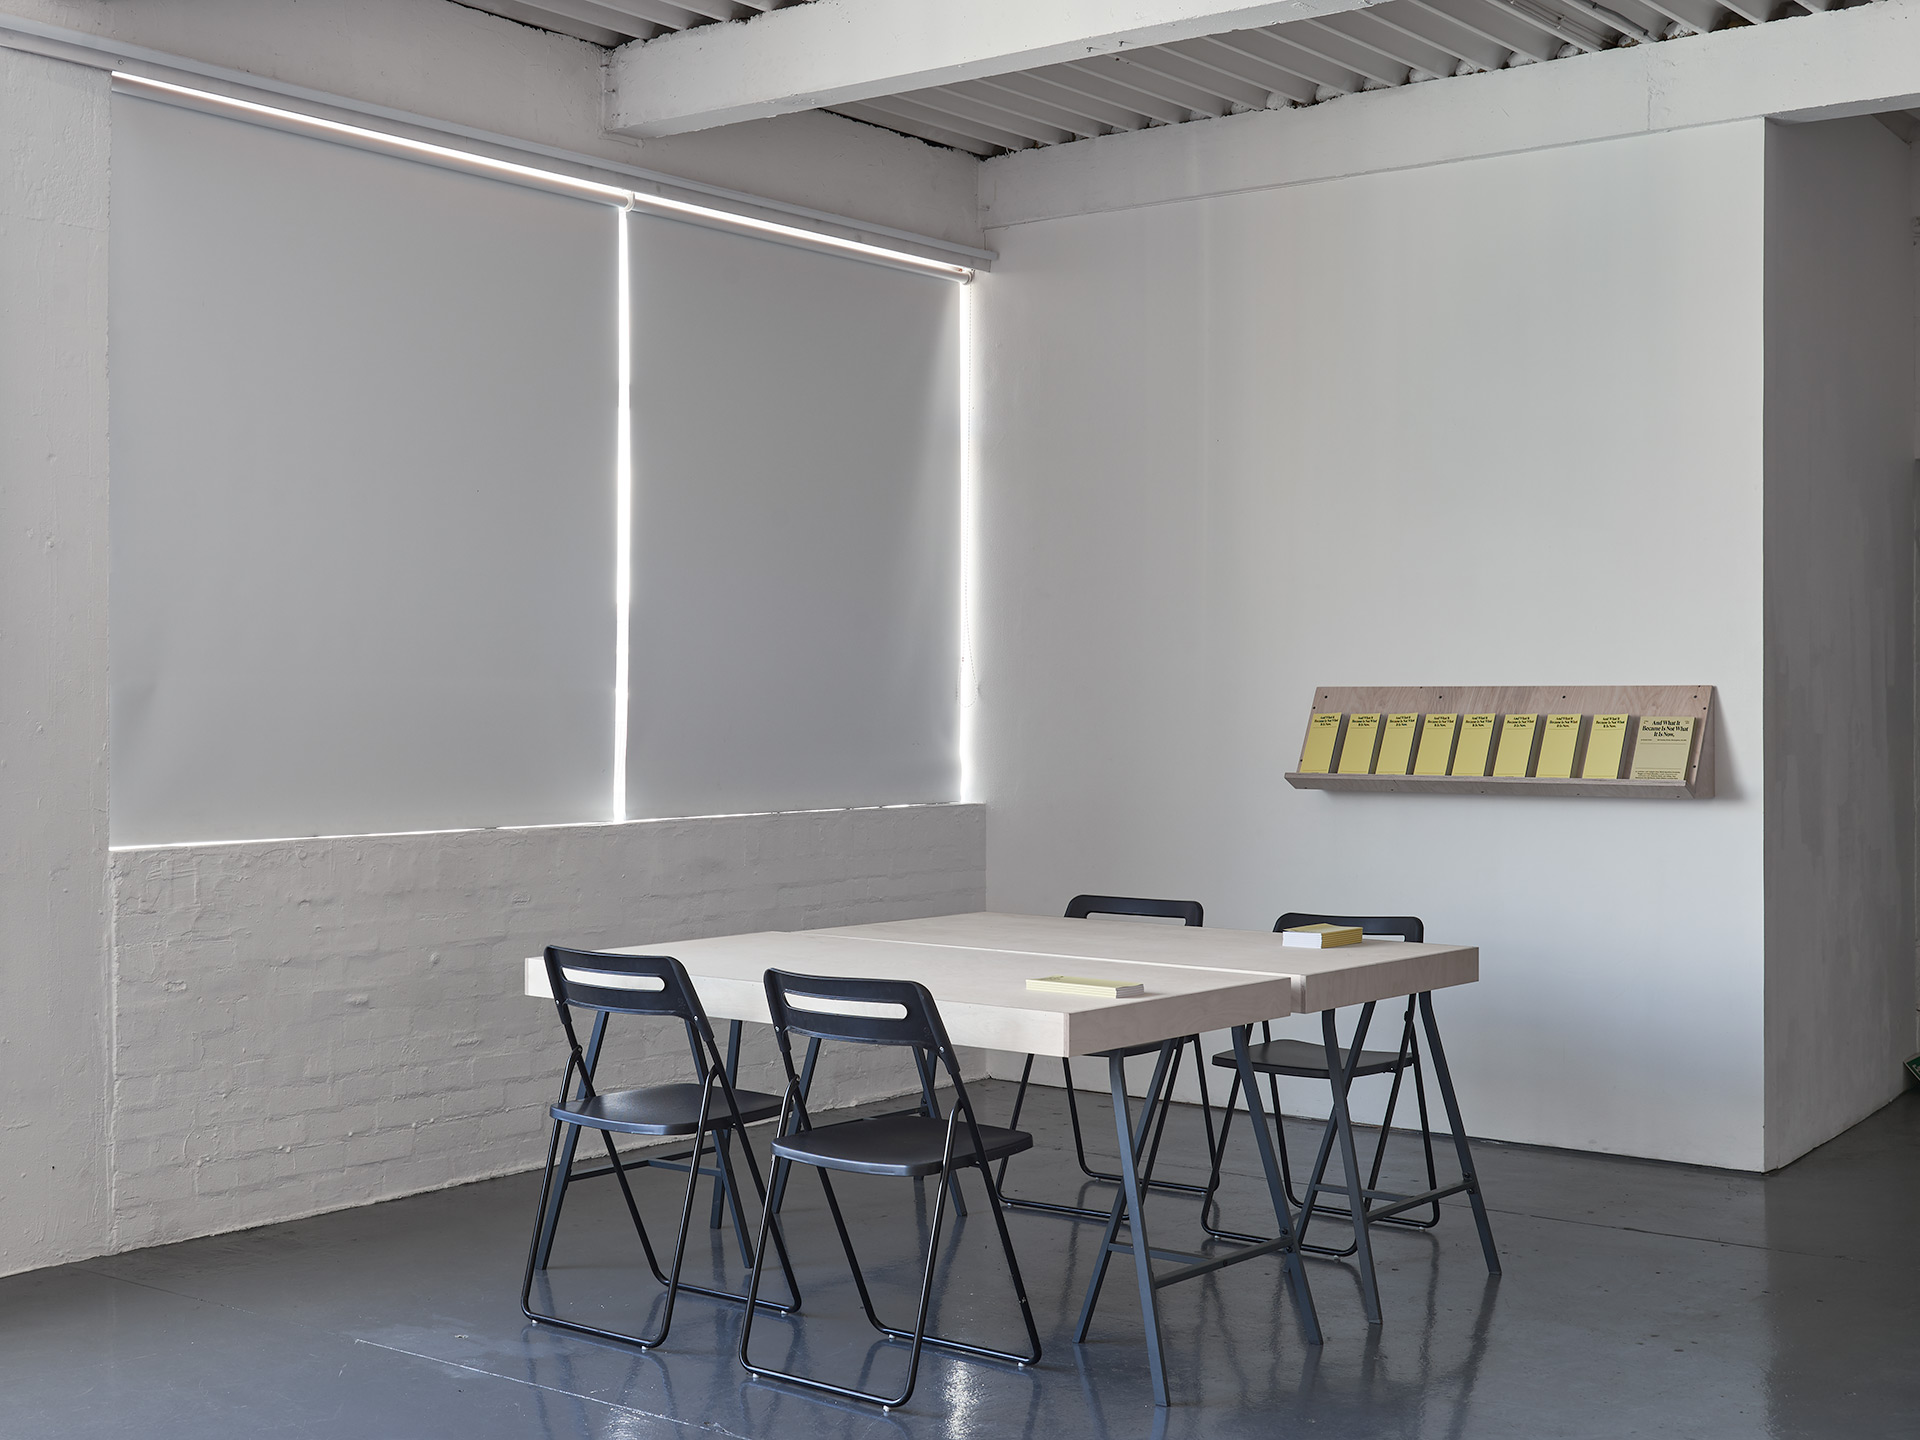 A custom made table is place in the corner of the gallery with four black chairs around it, on the wall behind a stack of yellow publications sit on a custom made shelf.